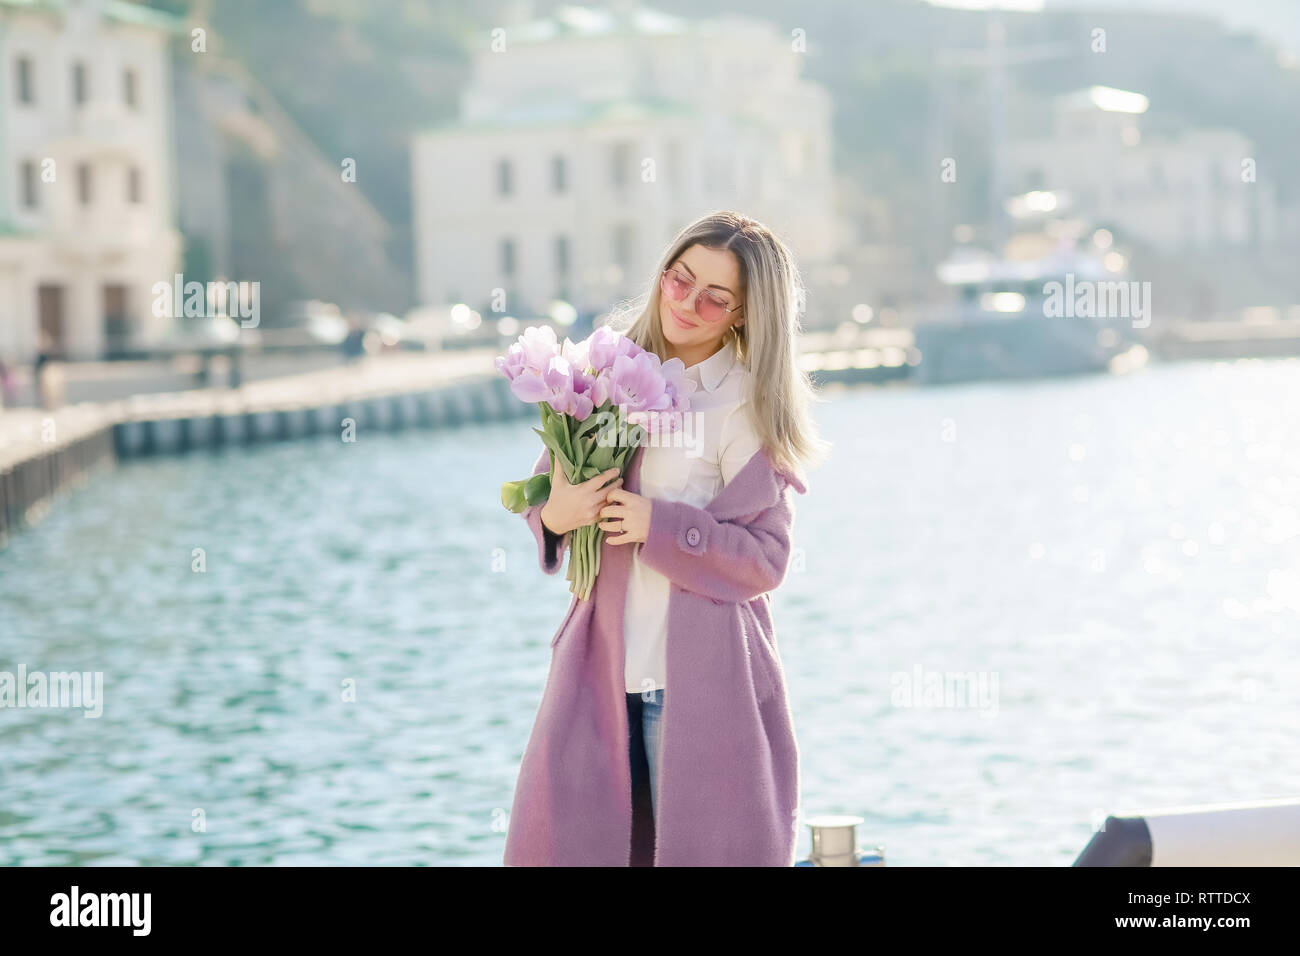 Beautiful happy woman with straight hair holding a bouquet of pink tulips one spring sunny day. - Stock Image